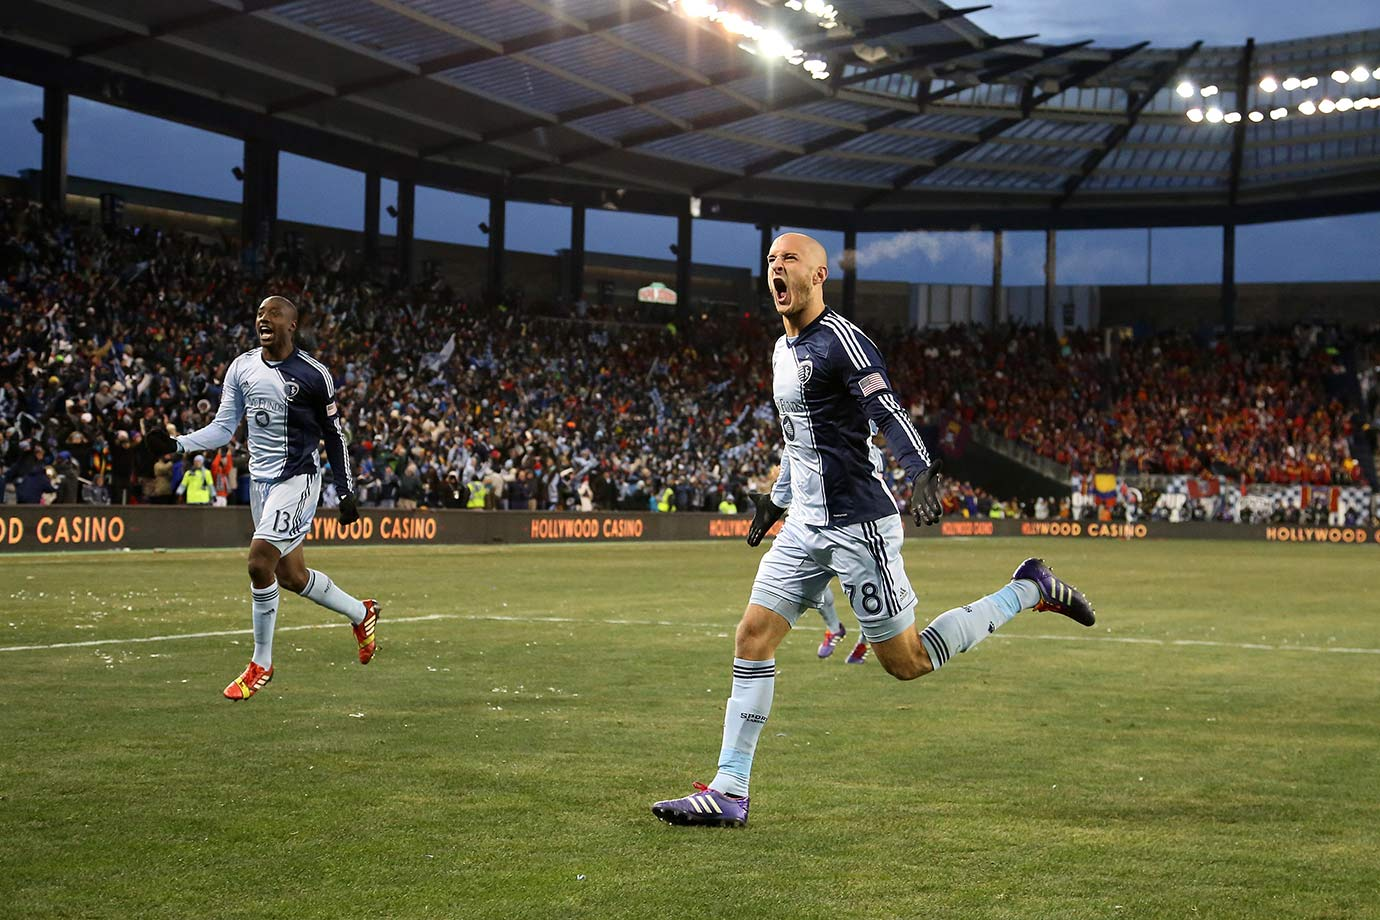 <p>2013 — Sporting Kansas City (beat Real Salt Lake in penalty kicks after 1-1 draw)</p>